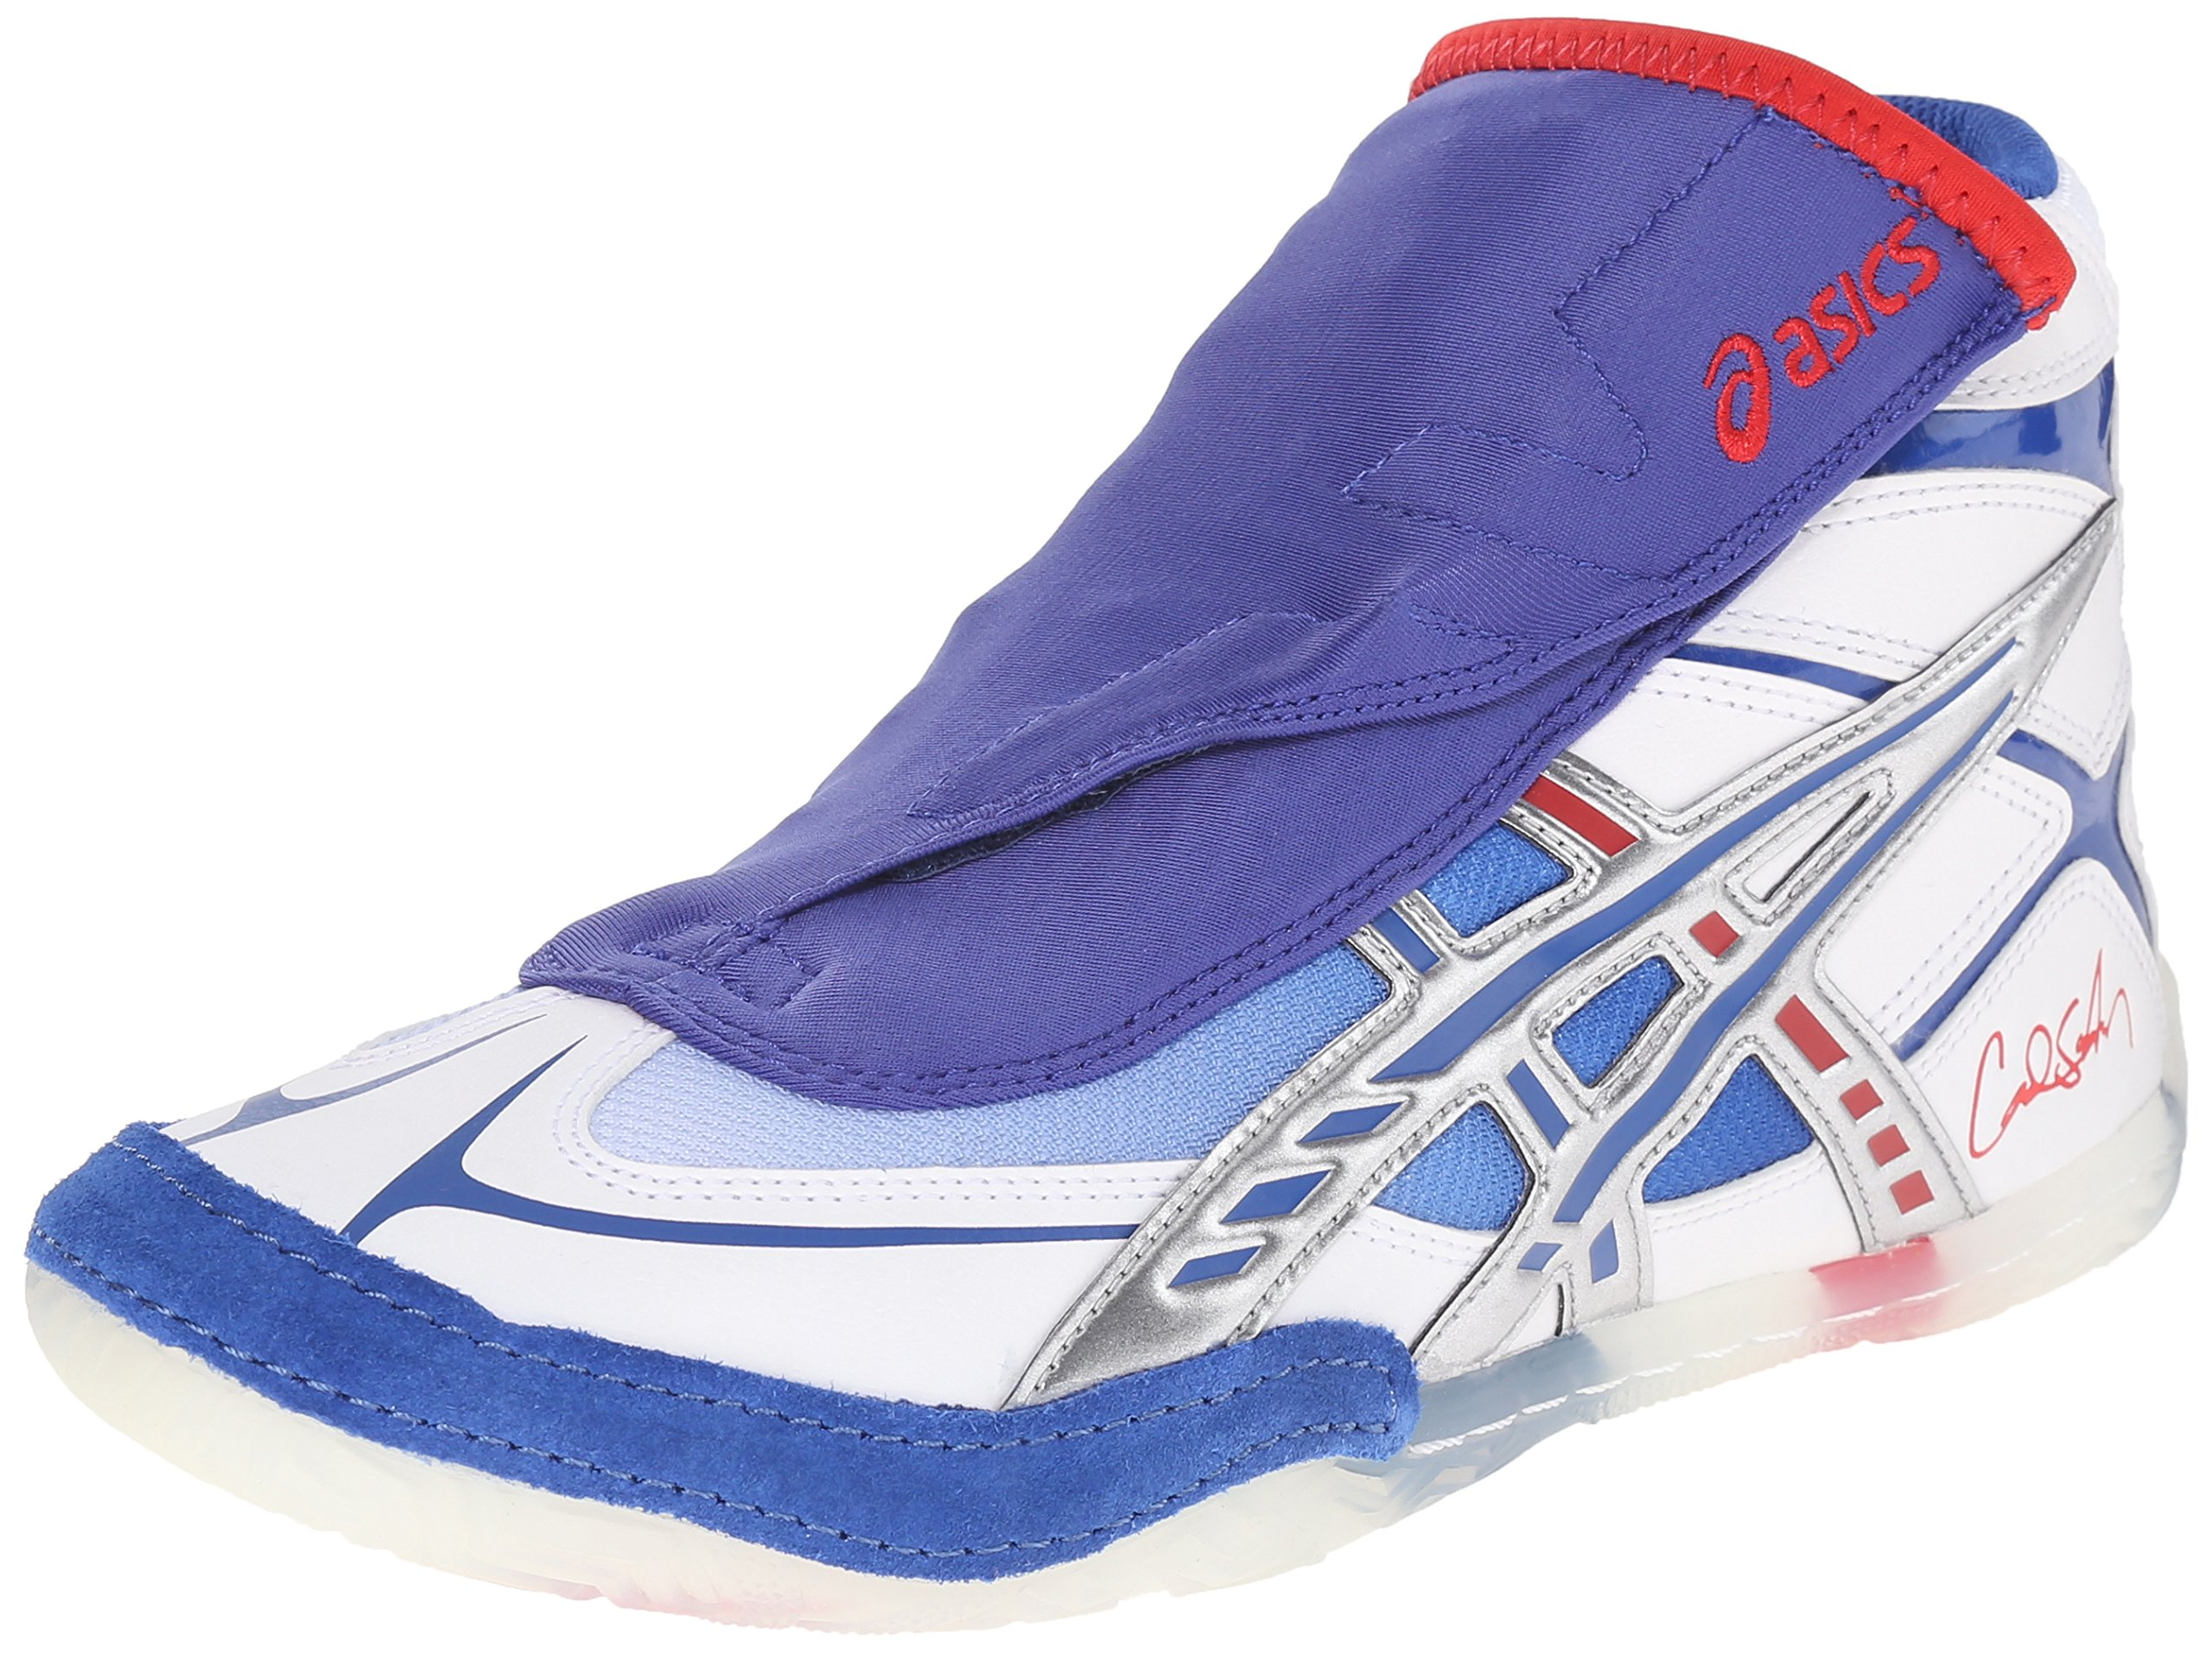 ASICS Men's Cael Wrestling Shoe, White/Blue/Red, 8 M US